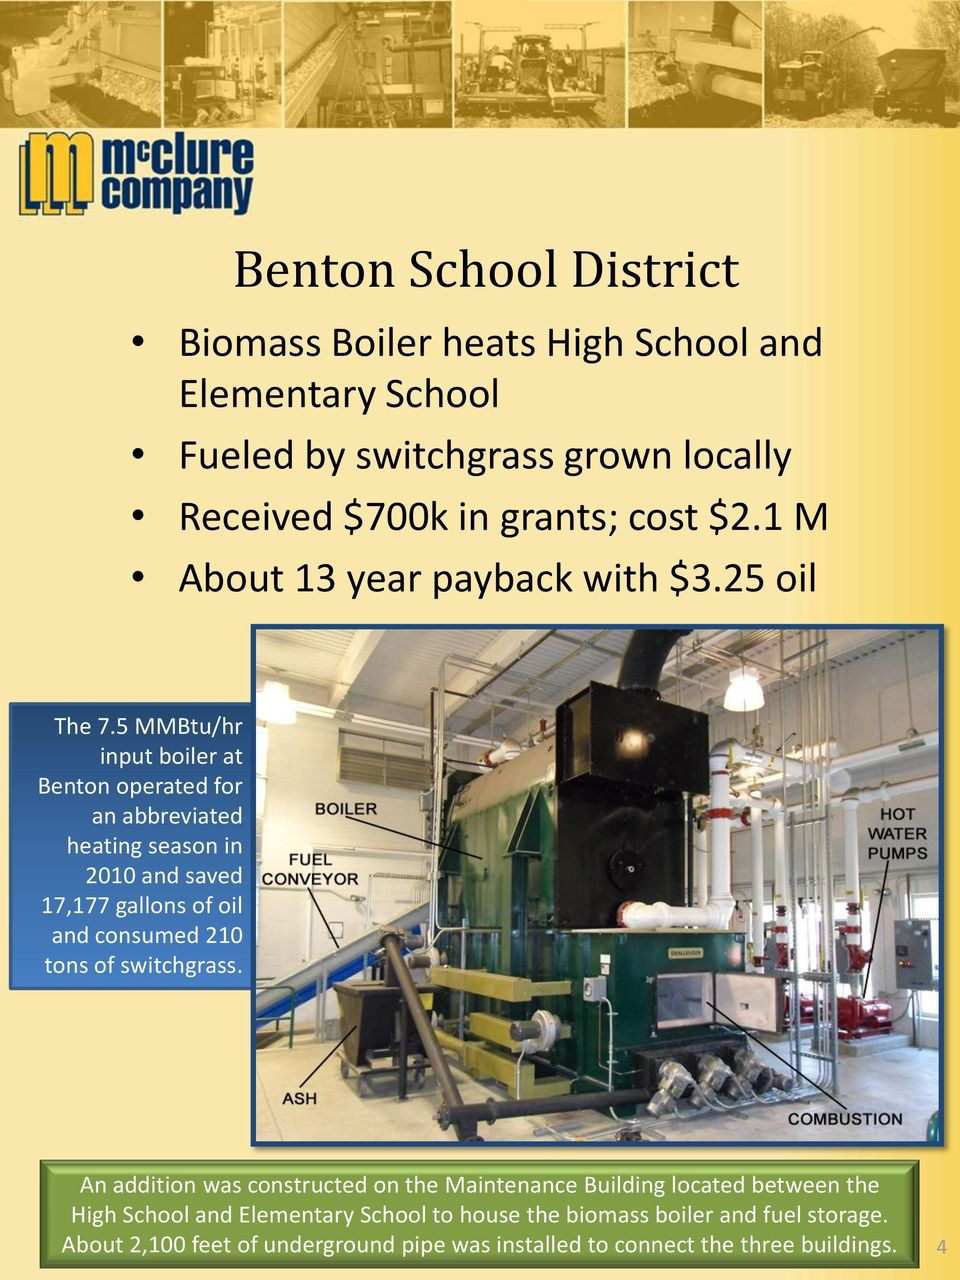 5 MMBtu/hr input boiler at Benton operated for an abbreviated heating season in 2010 and saved 17,177 gallons of oil and consumed 210 tons of